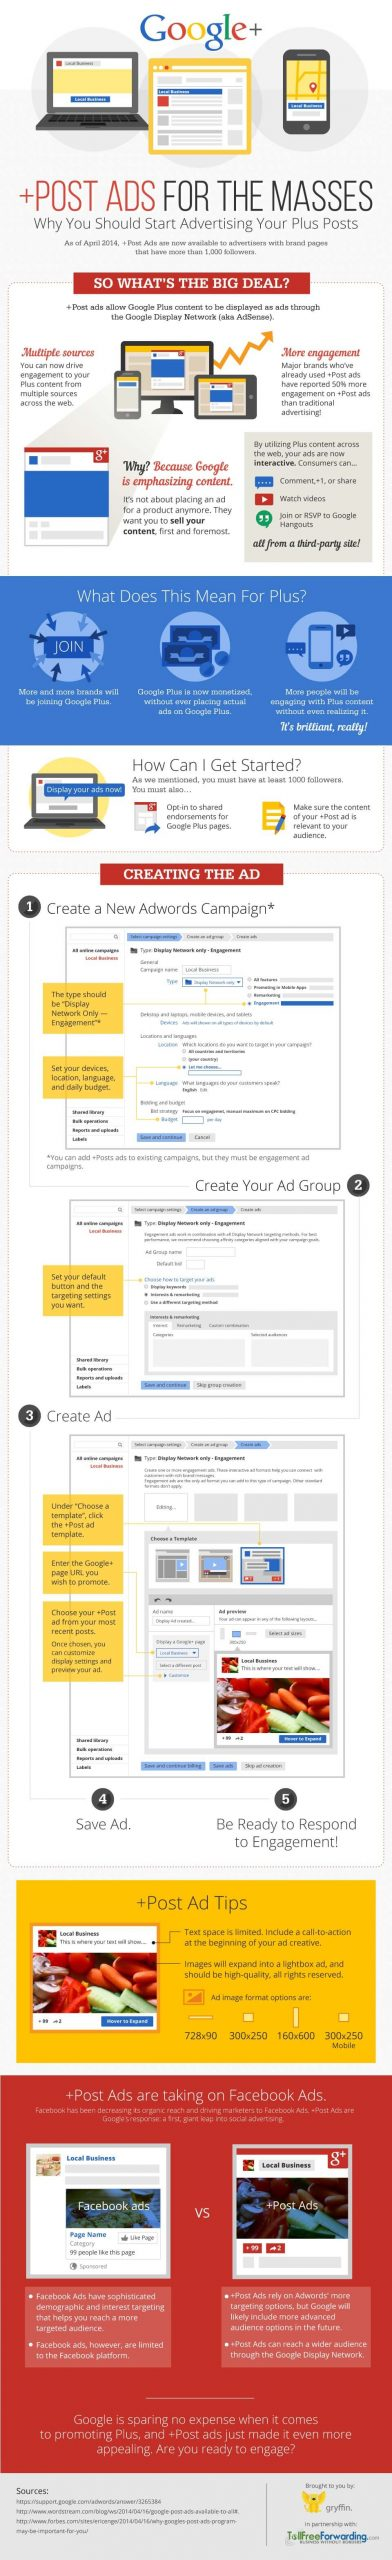 Google plus Post Ads for the Masses